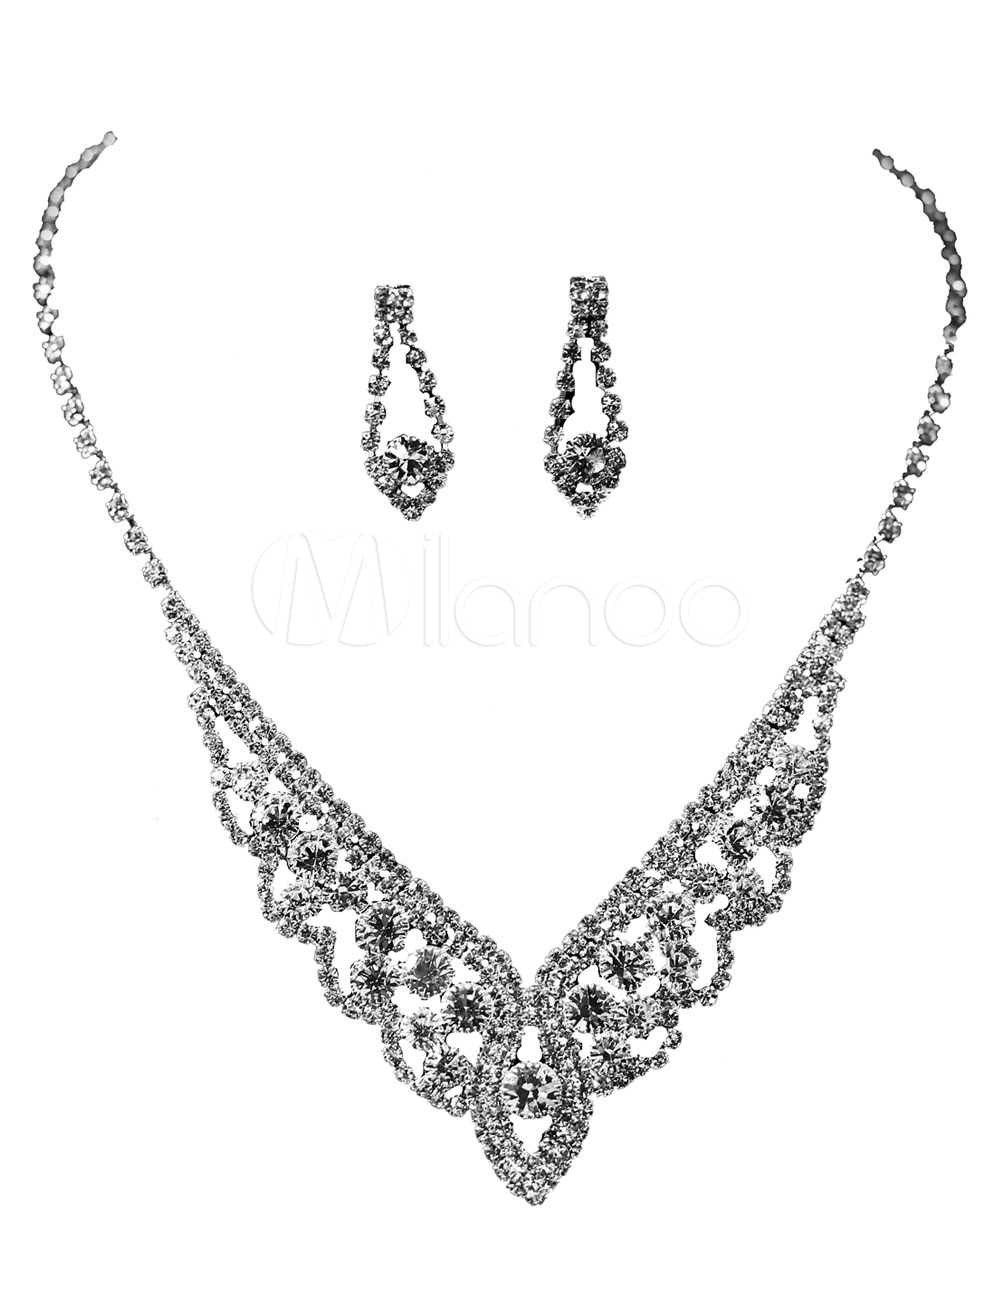 Silver Wedding Jewelry Set Rhinestones Bridal Necklace With Earrings